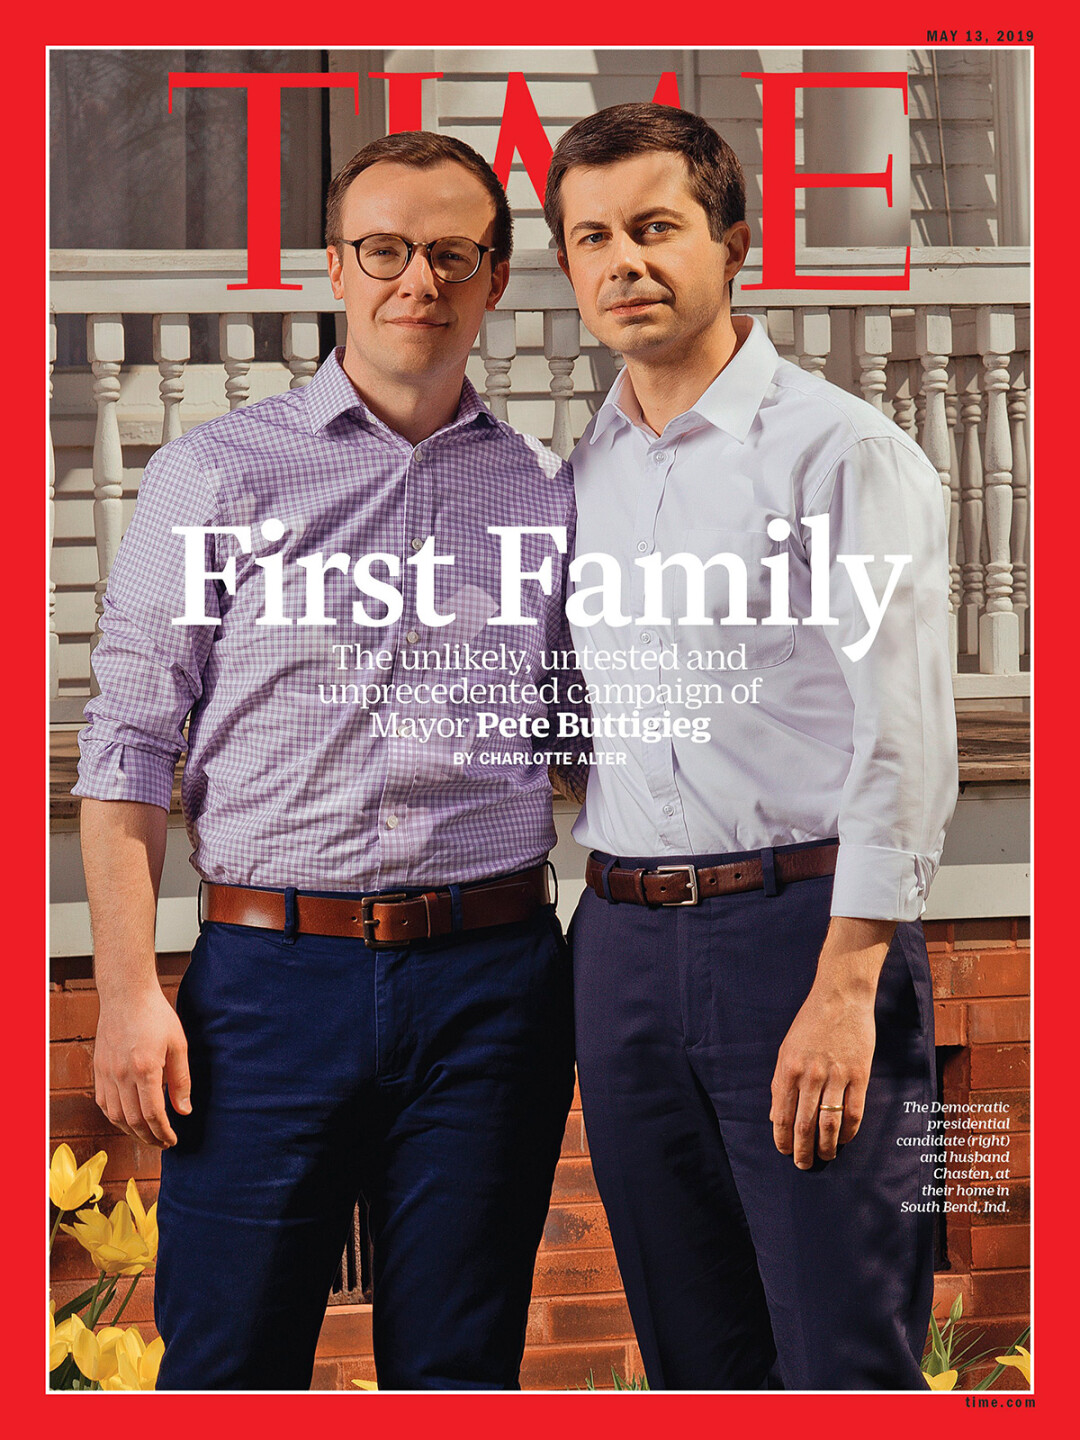 Chasten Buttigieg (left) on the cover of TIME Magazine (May 13) with husband and Democratic presidential hopeful Pete Buttigieg.